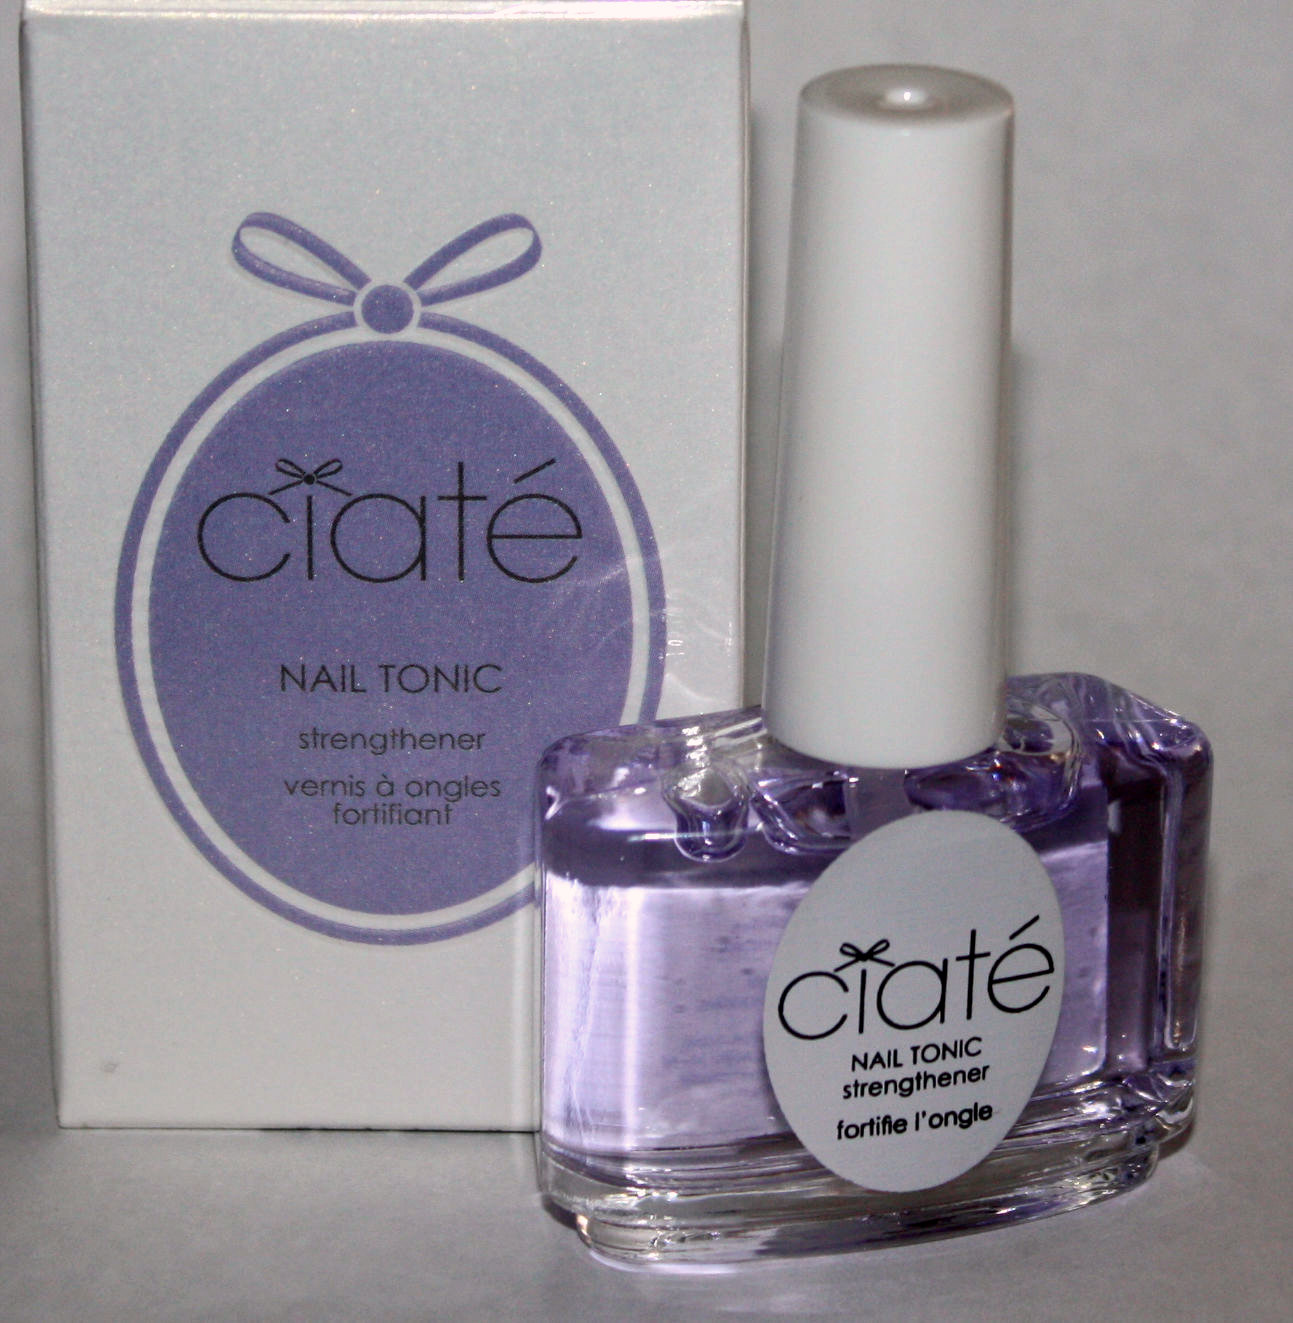 Ciate Nail Tonic Nail Strengthener 0.46 oz